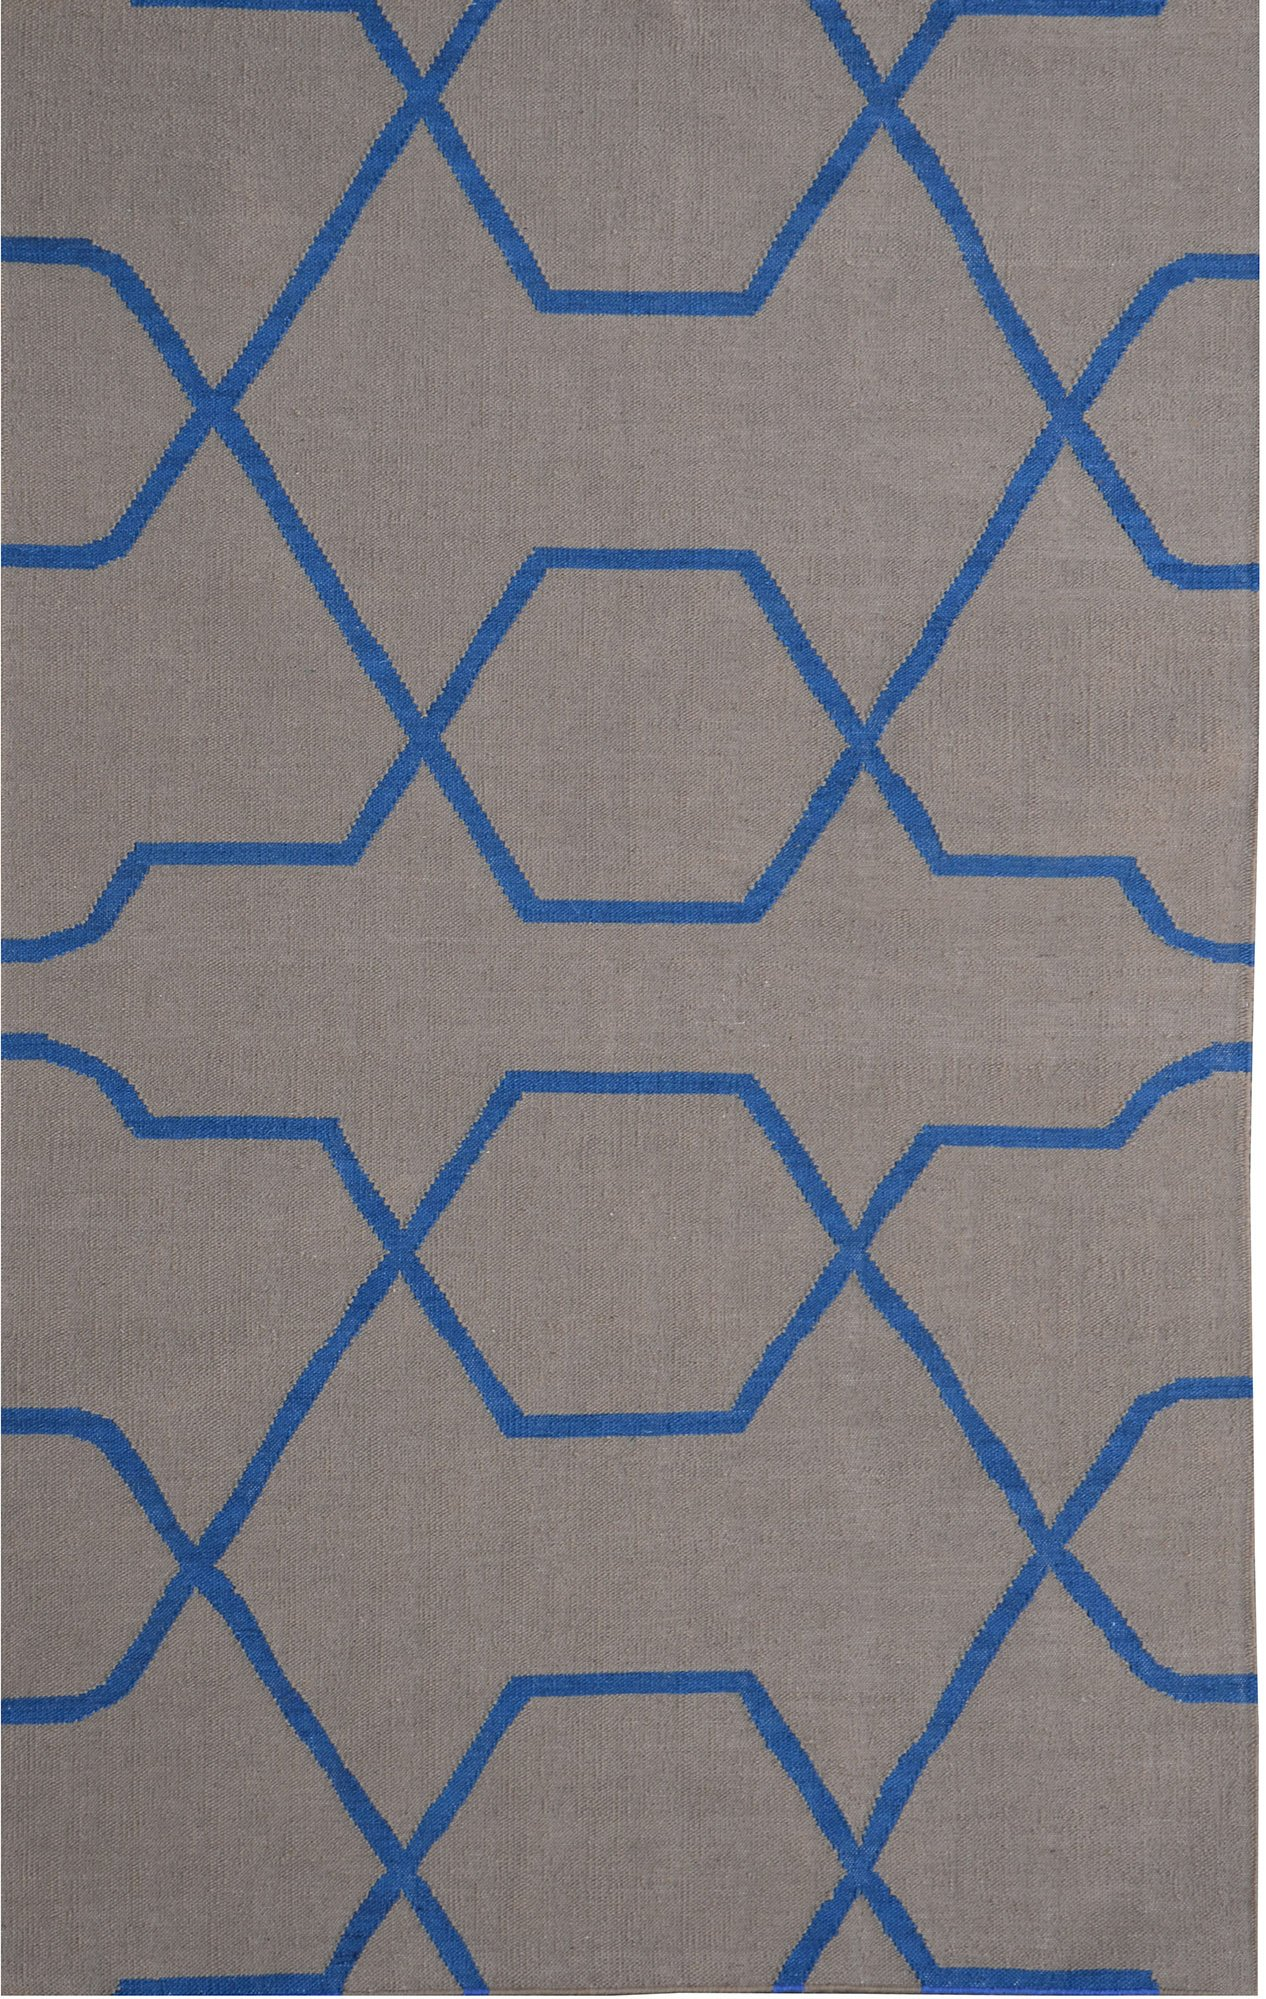 Meva Thai Area Rug, 5-Feet by 8-Feet, Cool Gray by Meva